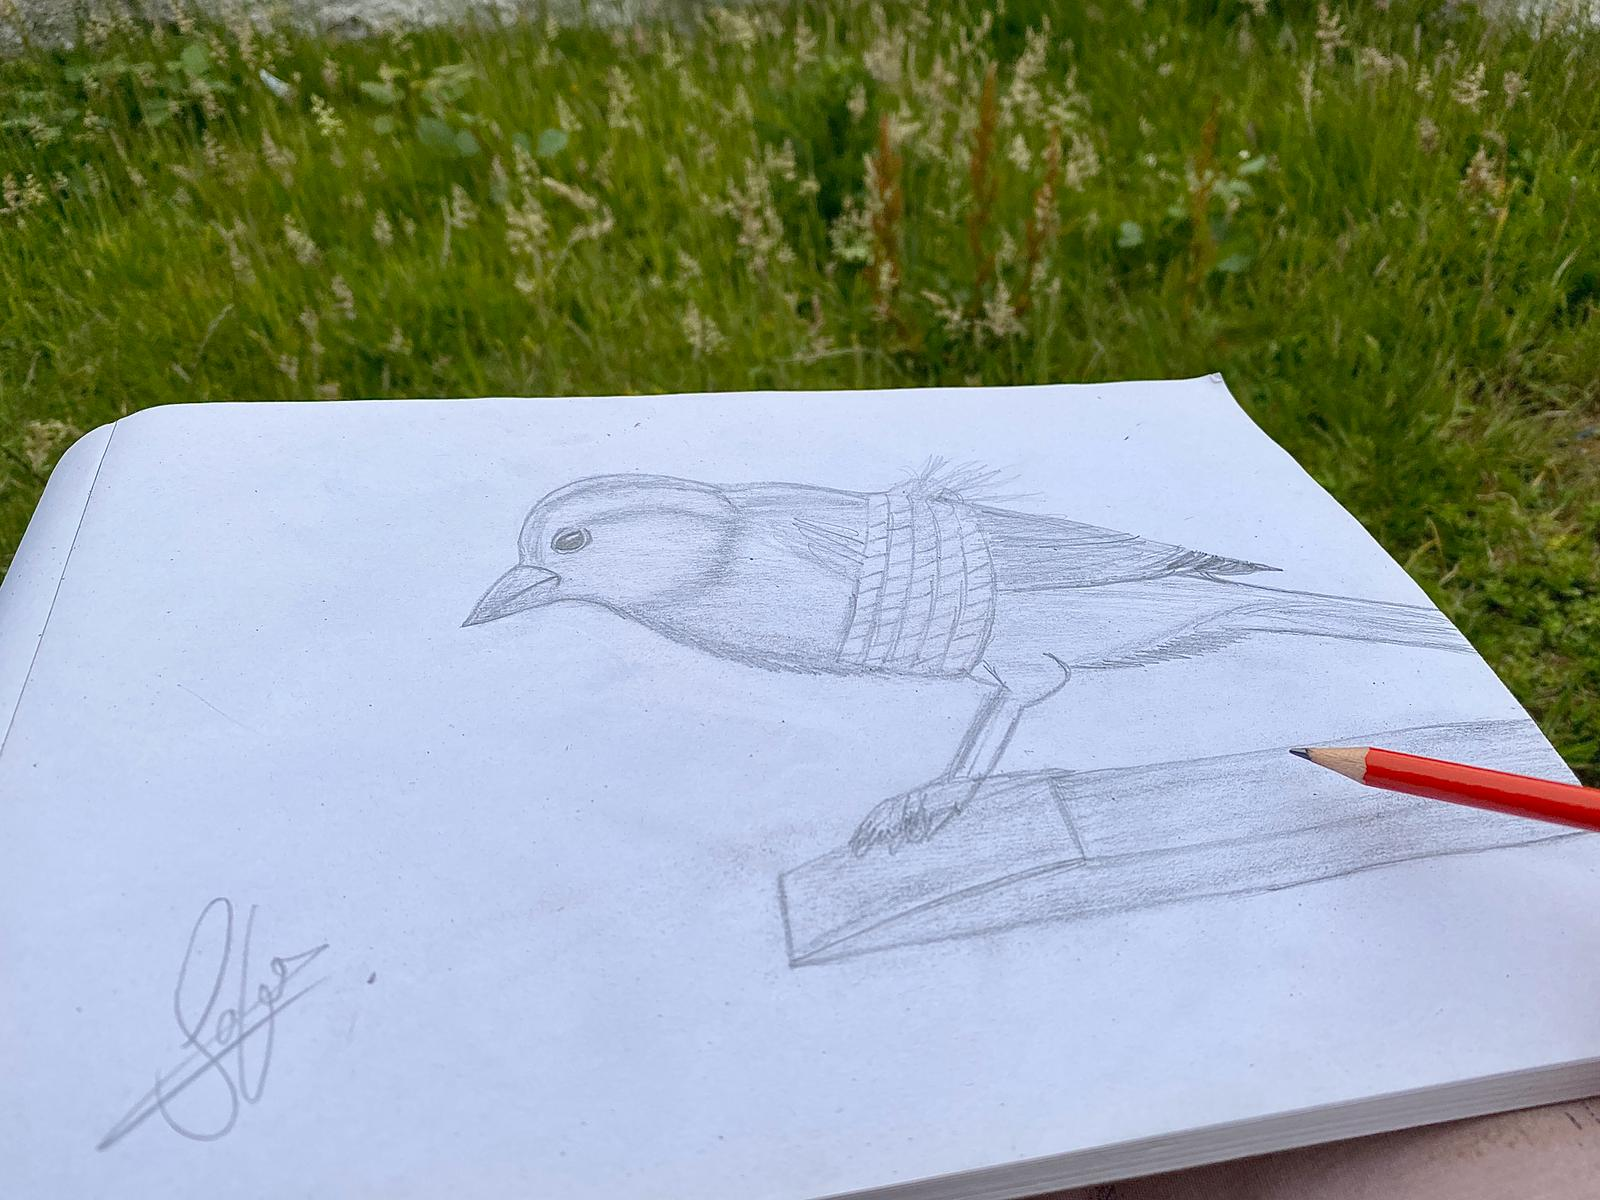 A bird is shown in a pencil drawing tied up and unable to fly